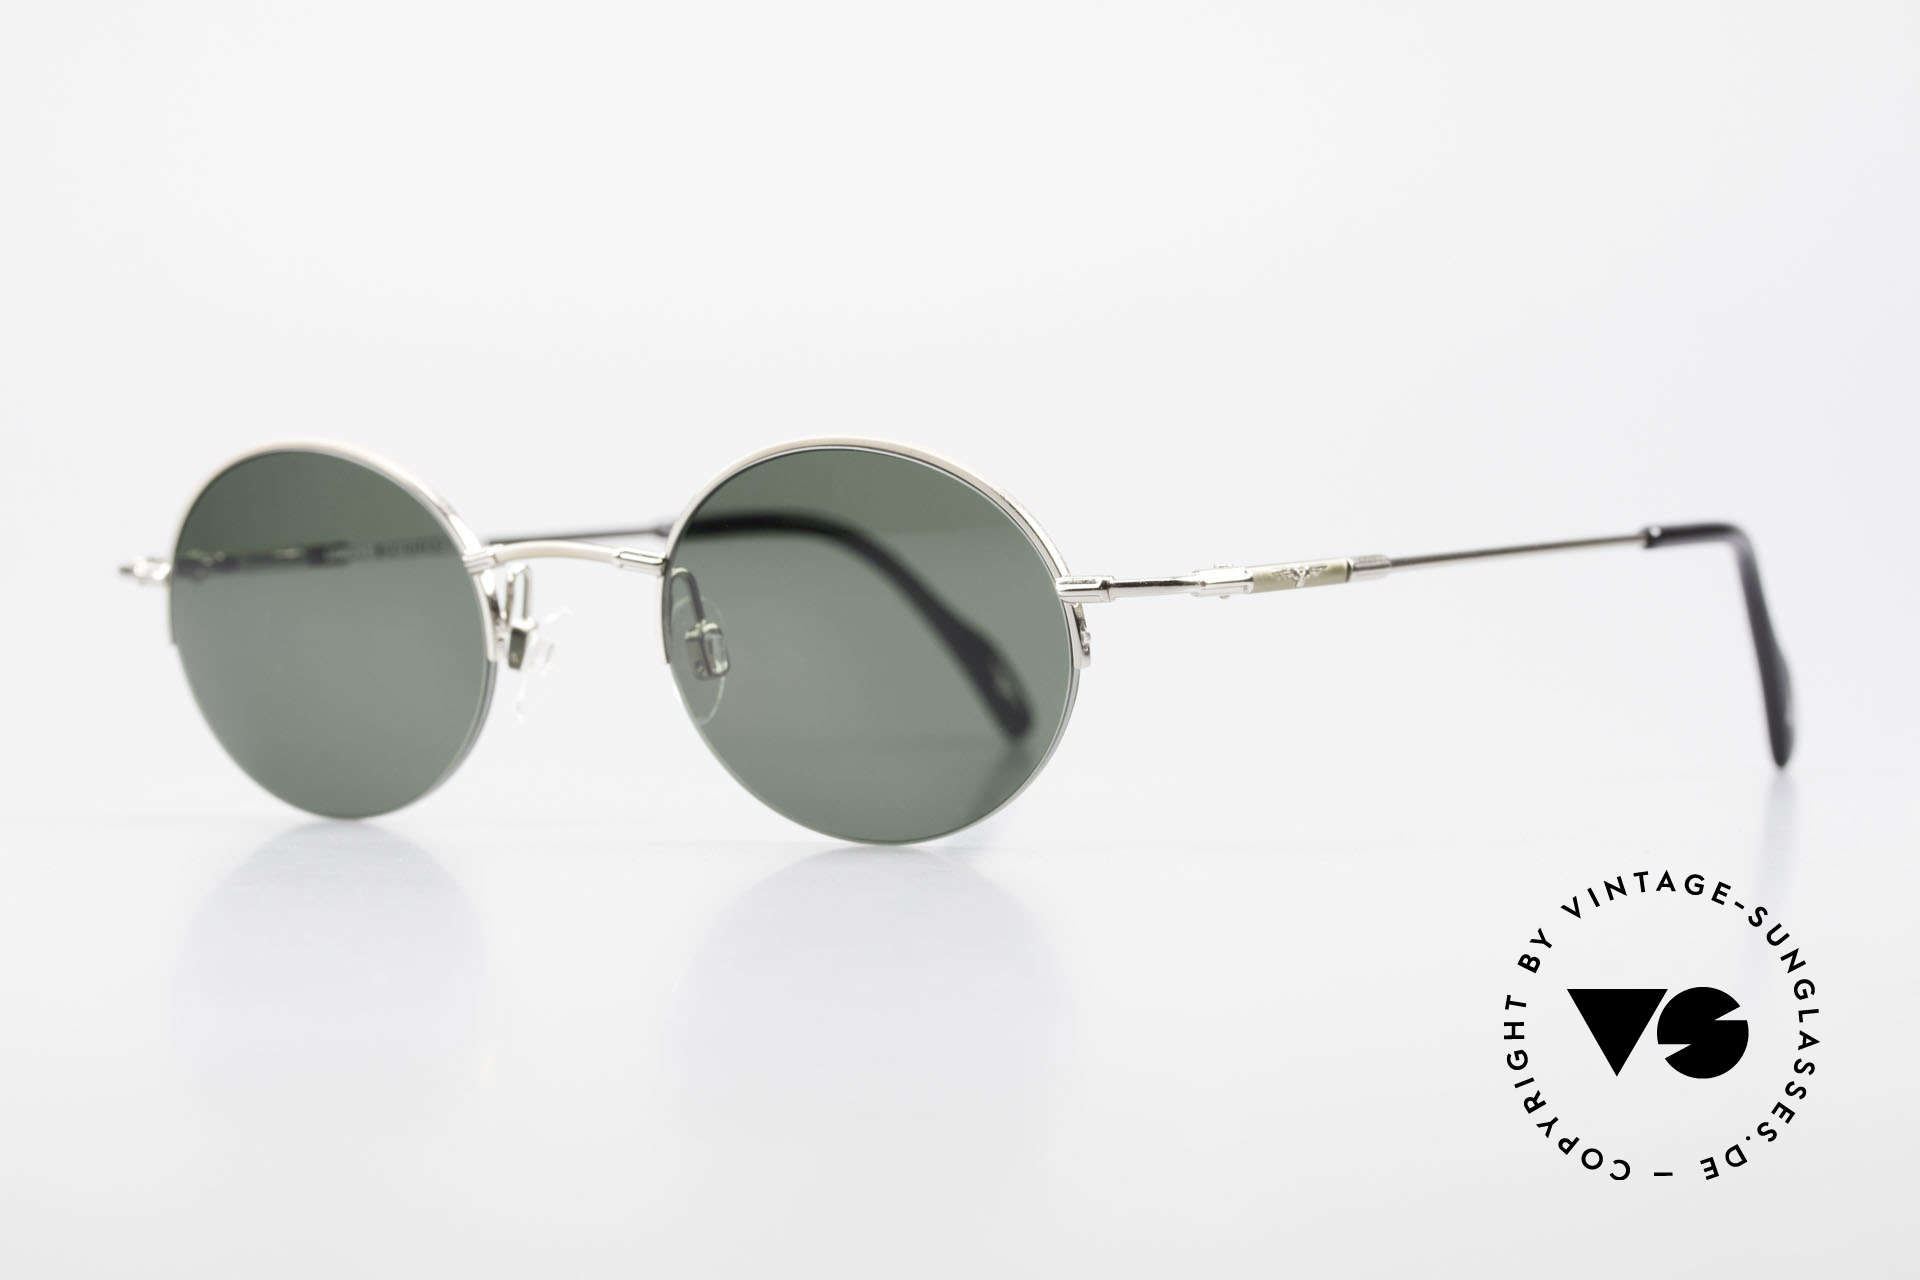 Longines 4363 Round Oval Sunglasses 90's, Longines logo, the winged hourglass, on the temples, Made for Men and Women